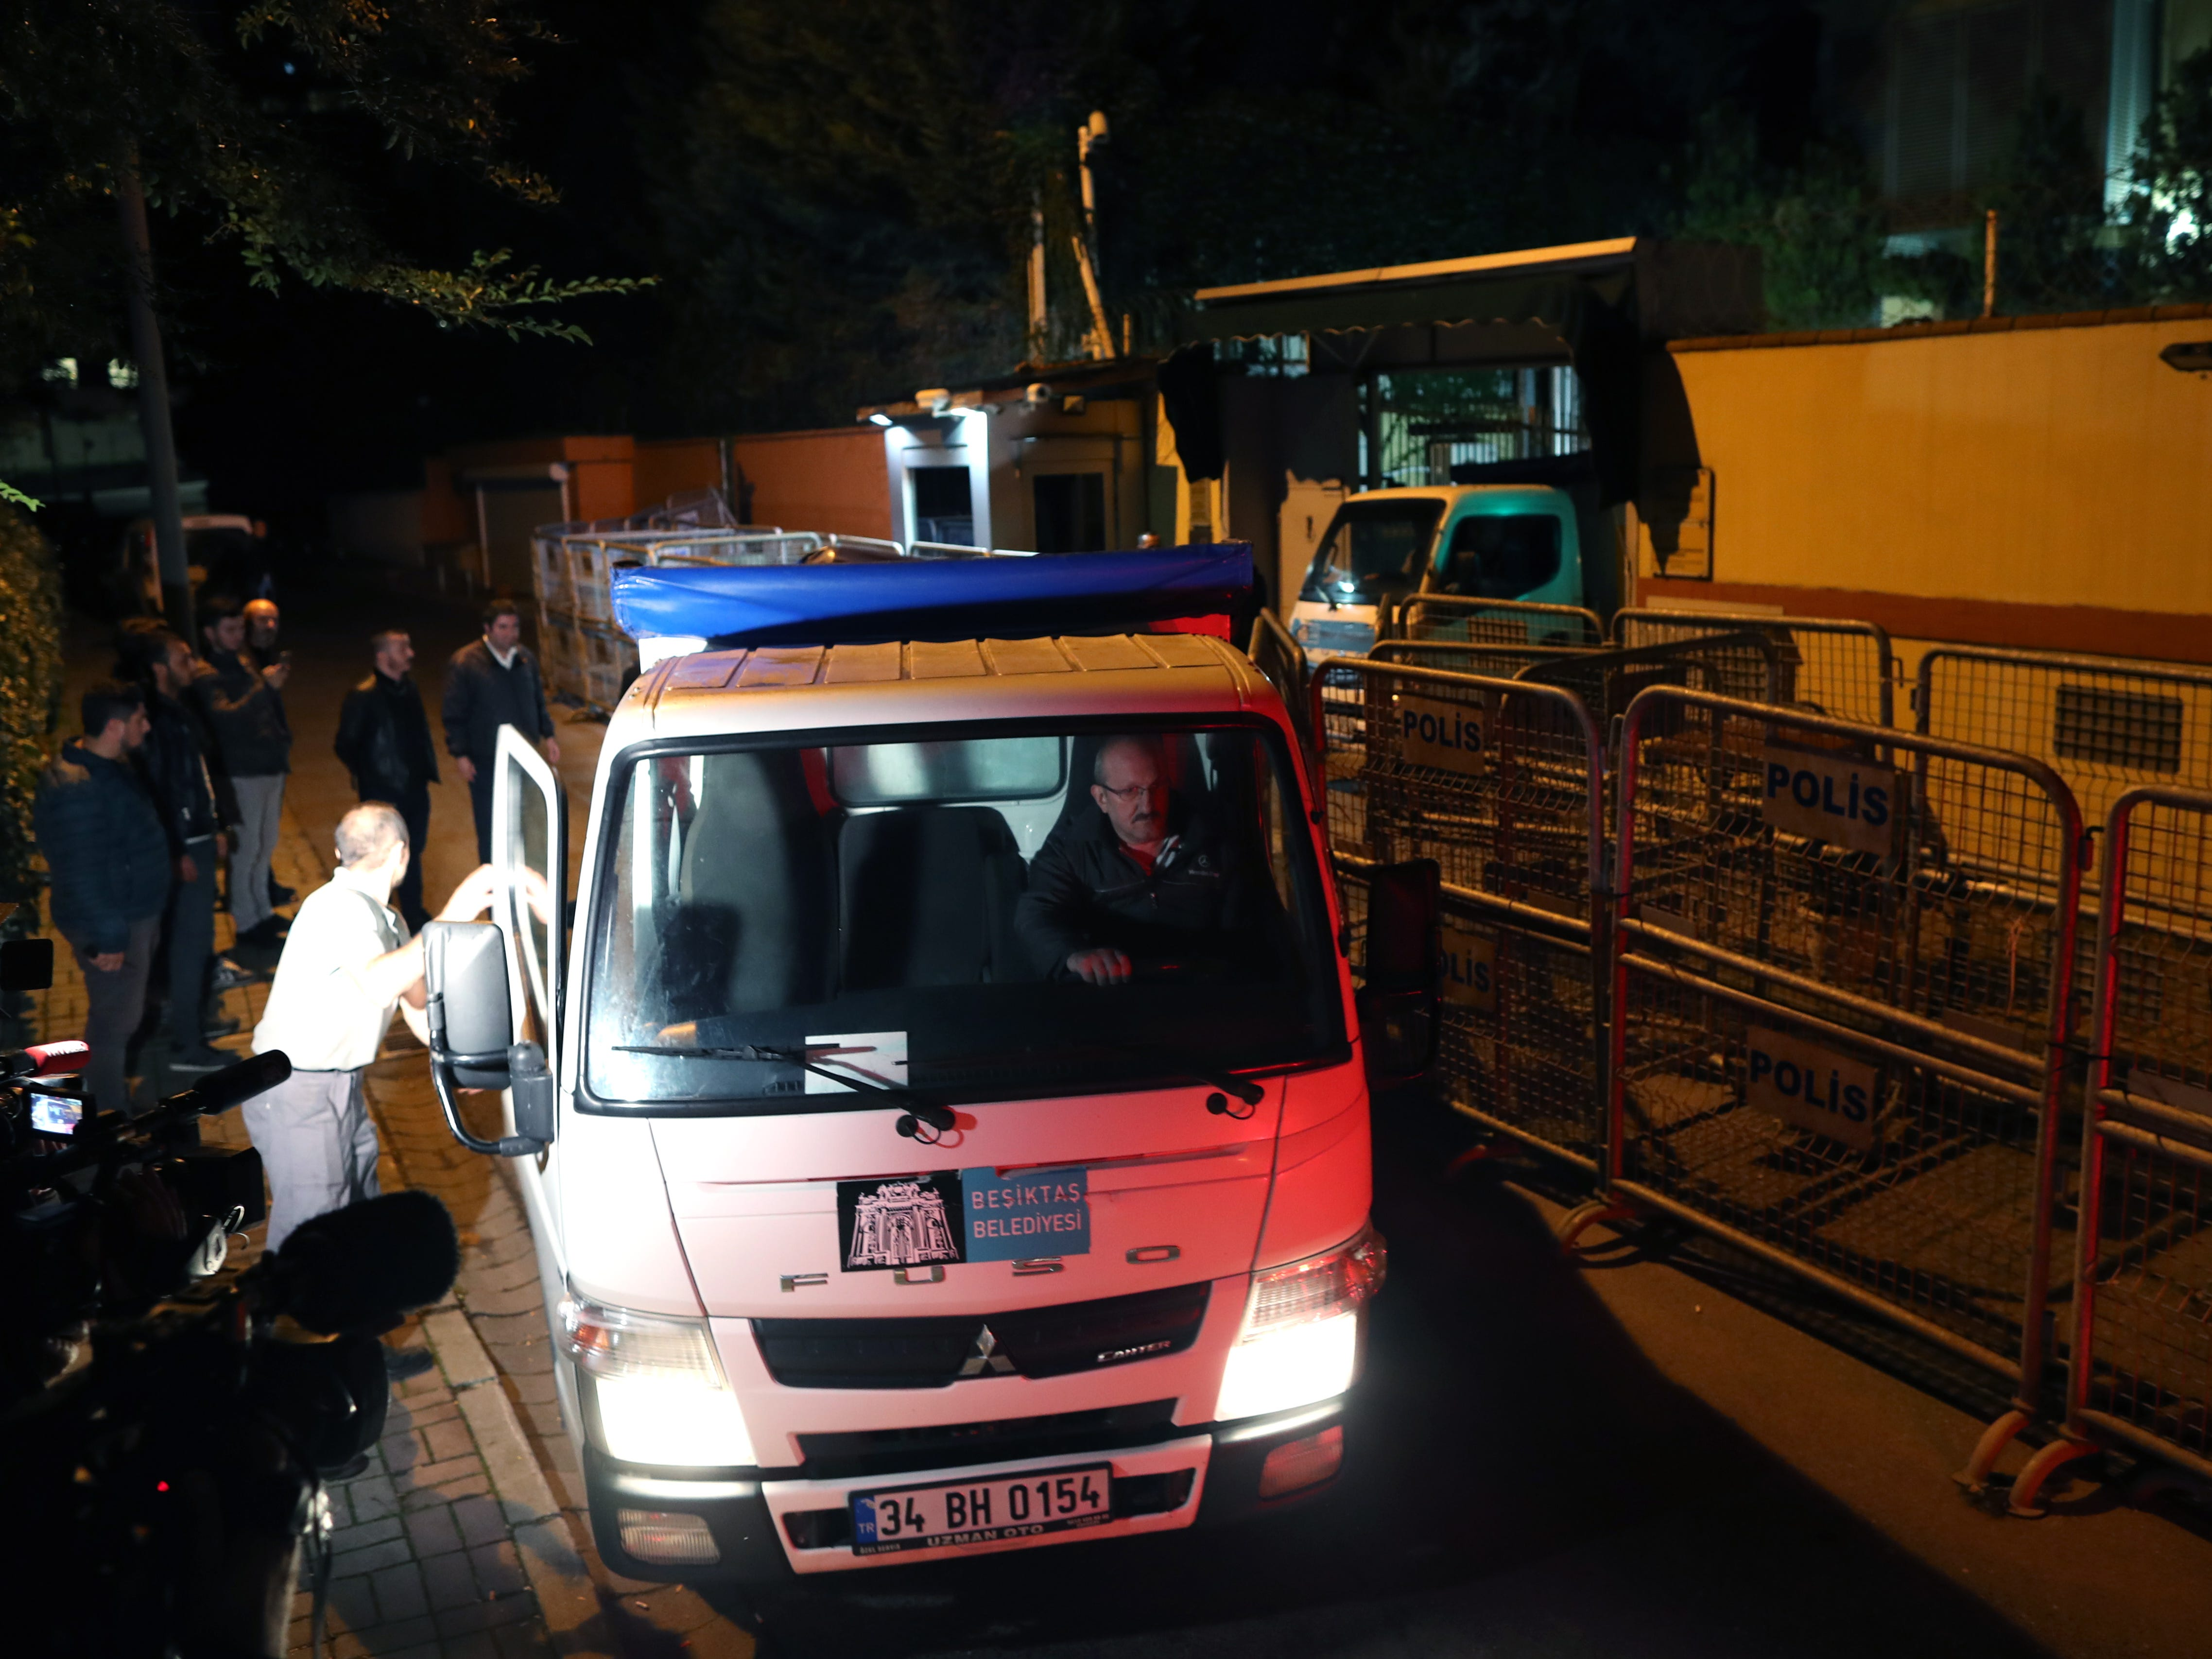 Two trucks are loaded with evidence from Turkish forensic police officers as they take part in the investigation of the disappearance of journalist Jamal Khashoggi, at the Saudi Consulate in Istanbul, Oct. 16, 2018.